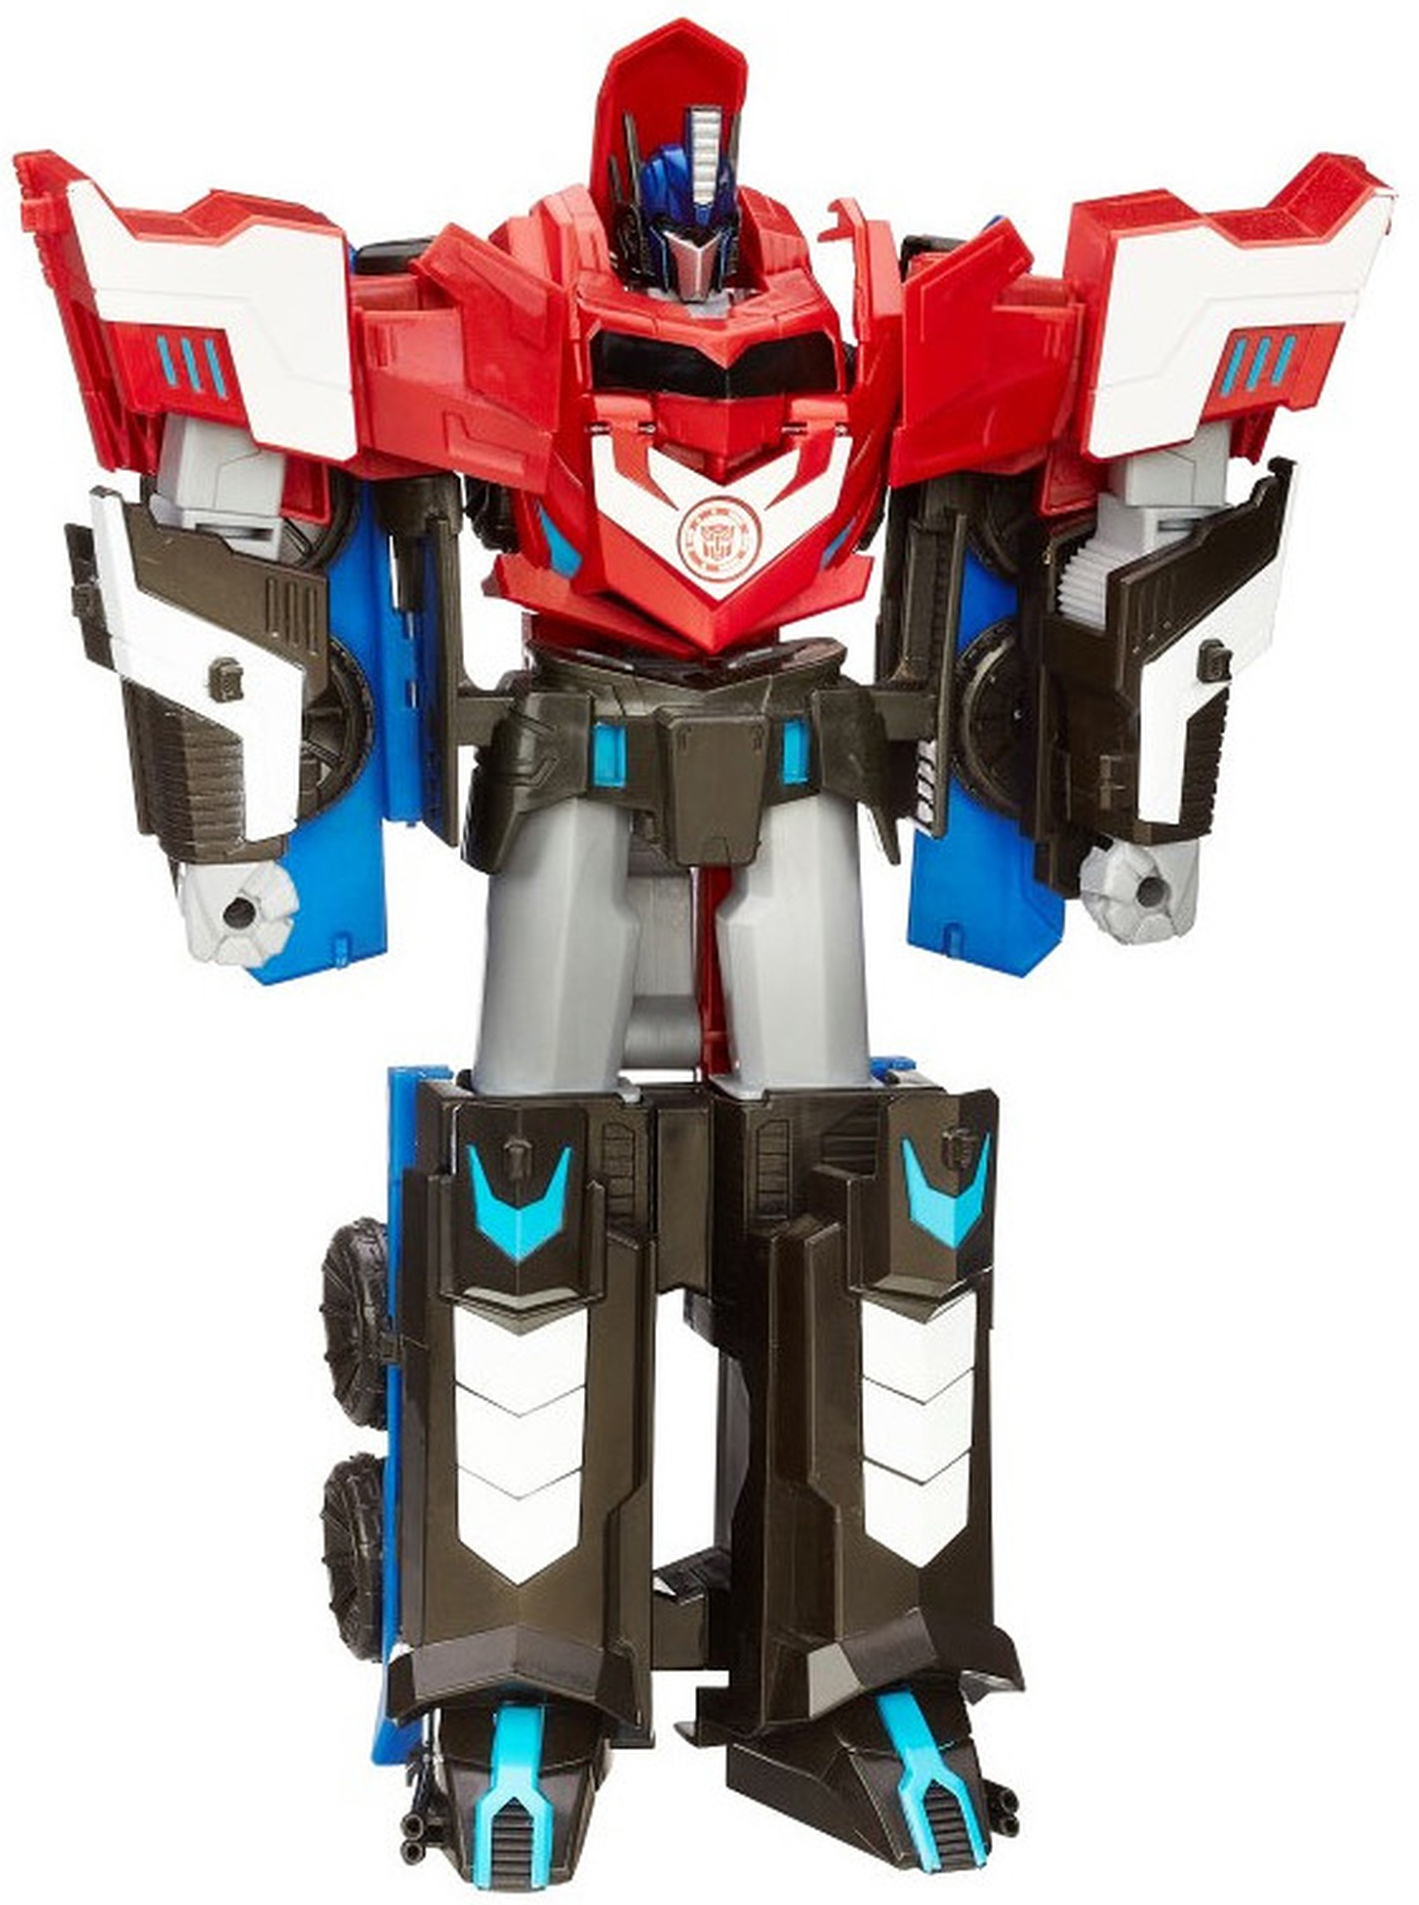 Transformers Transformers Robots in Disguise hasbro hasbro трансформеры robots in disguise autobot drift